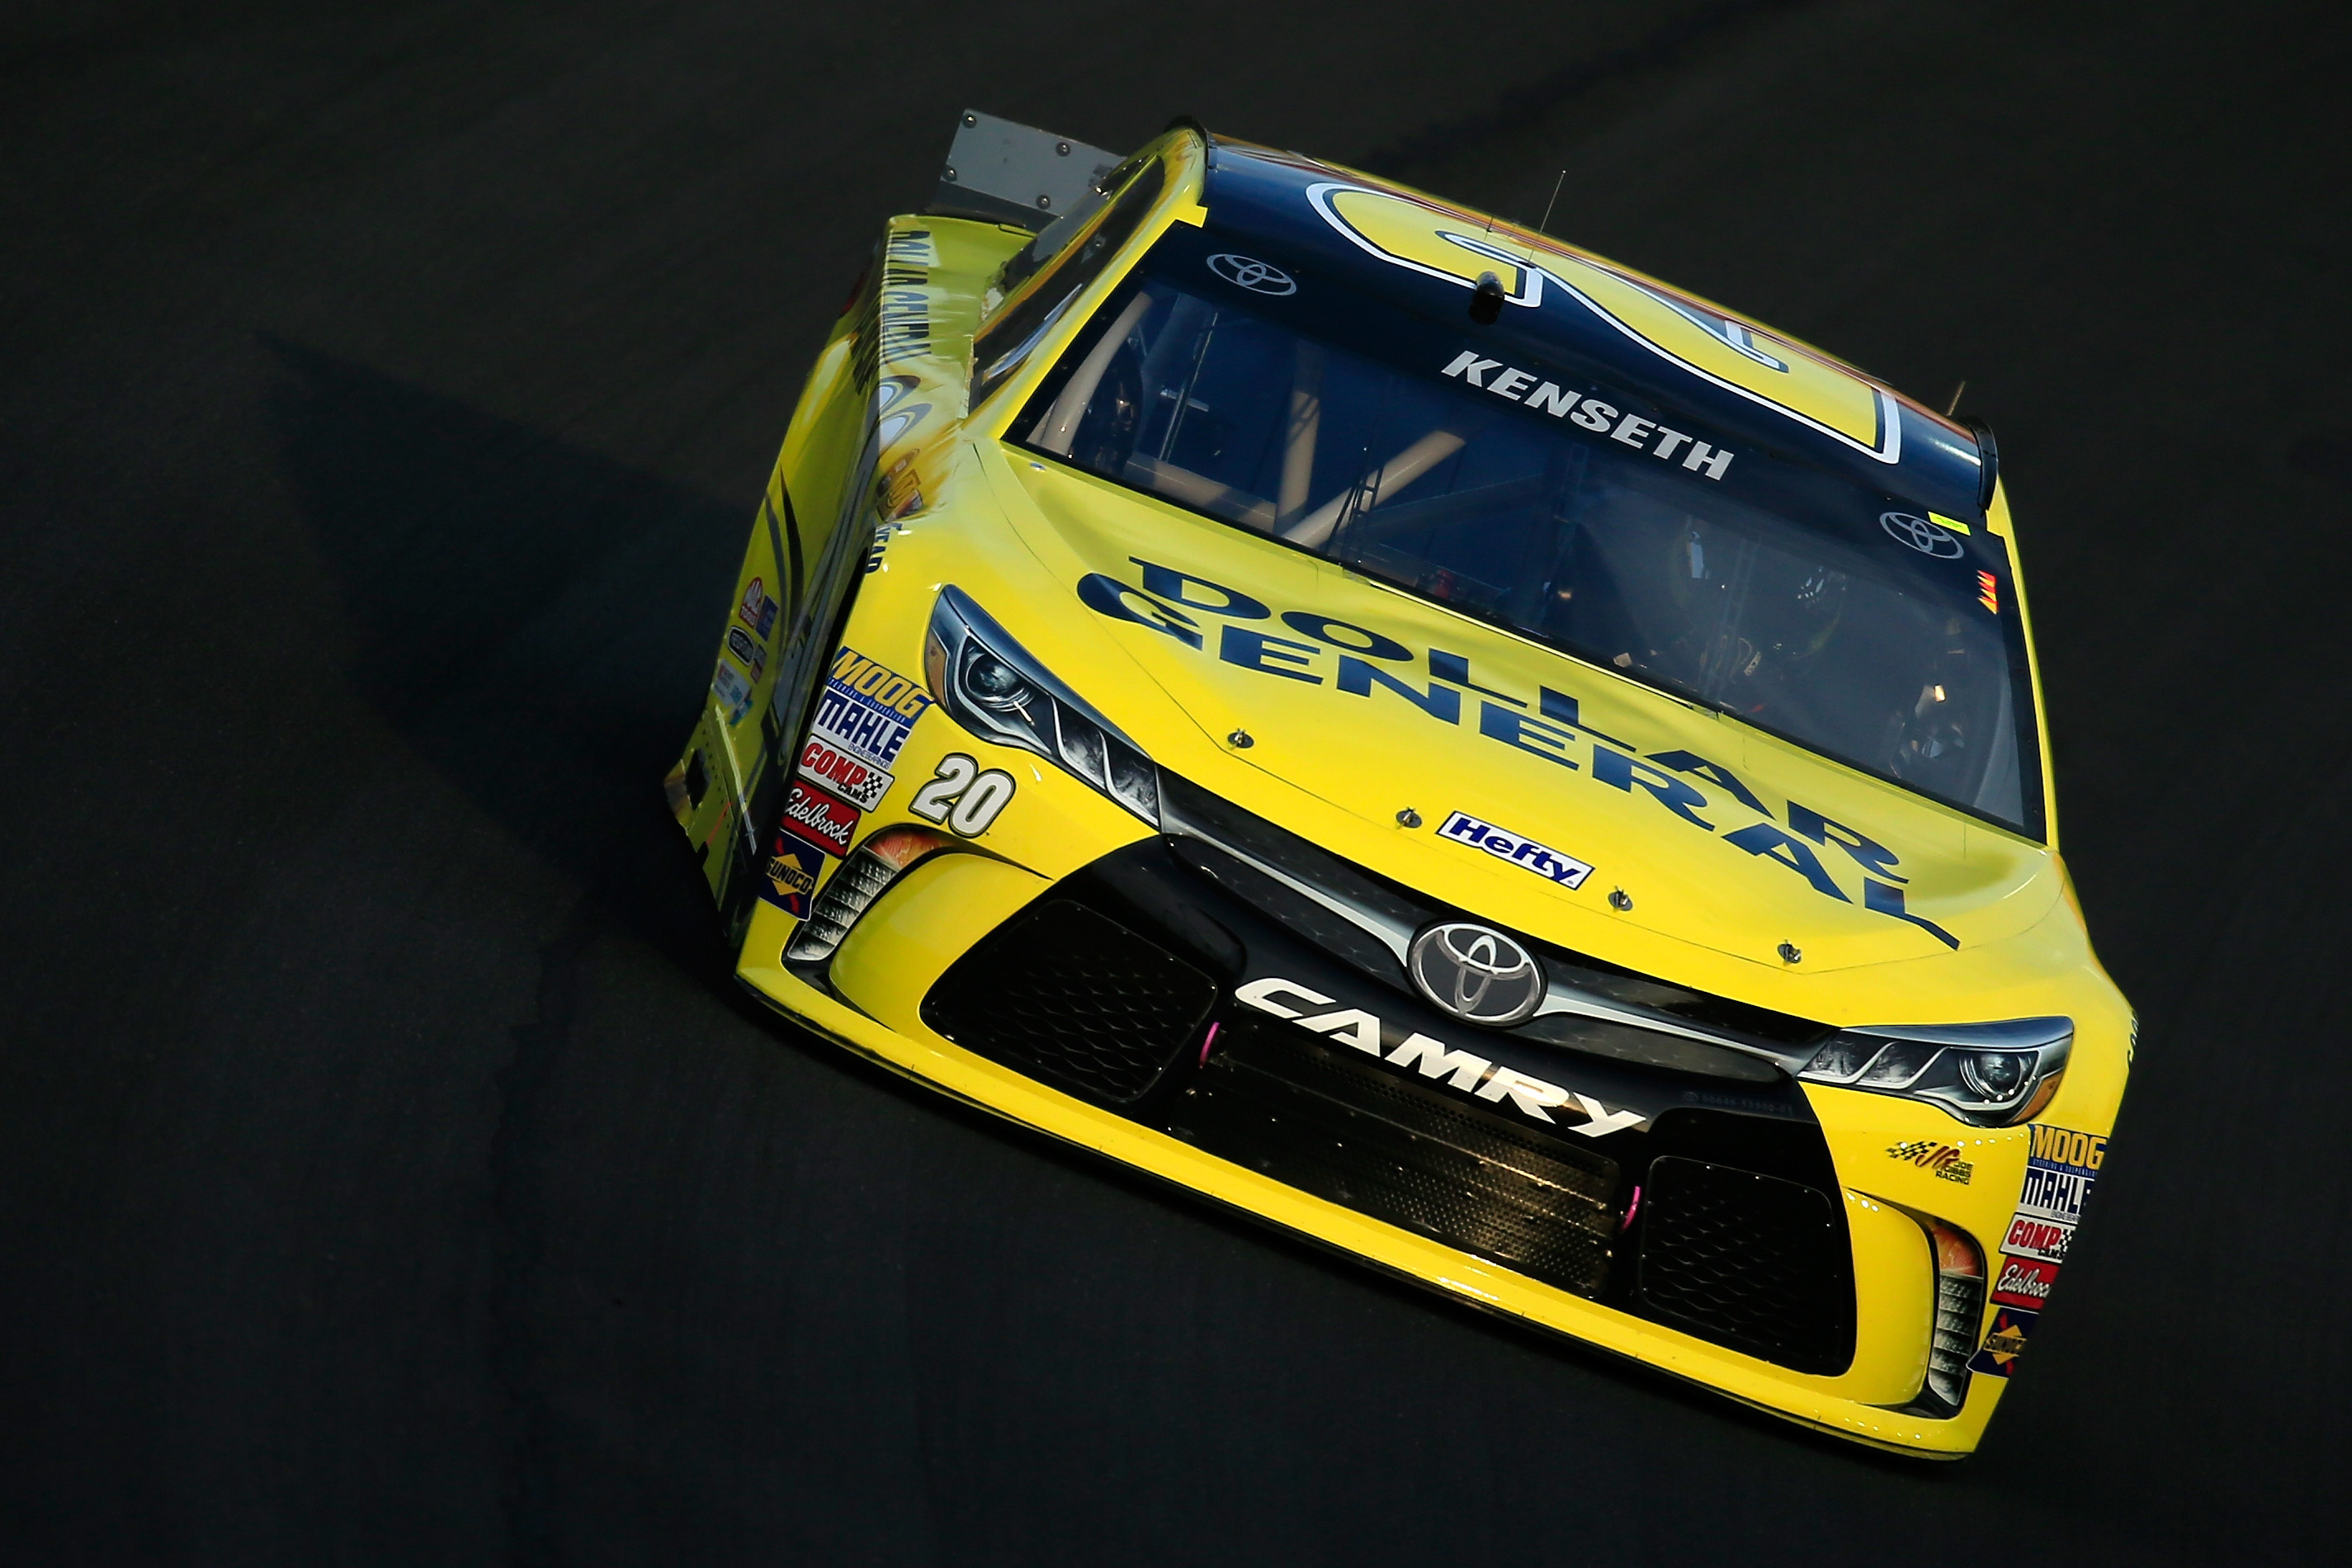 Sprint Cup qualifying: Matt Kenseth on pole for Coca-Cola 600